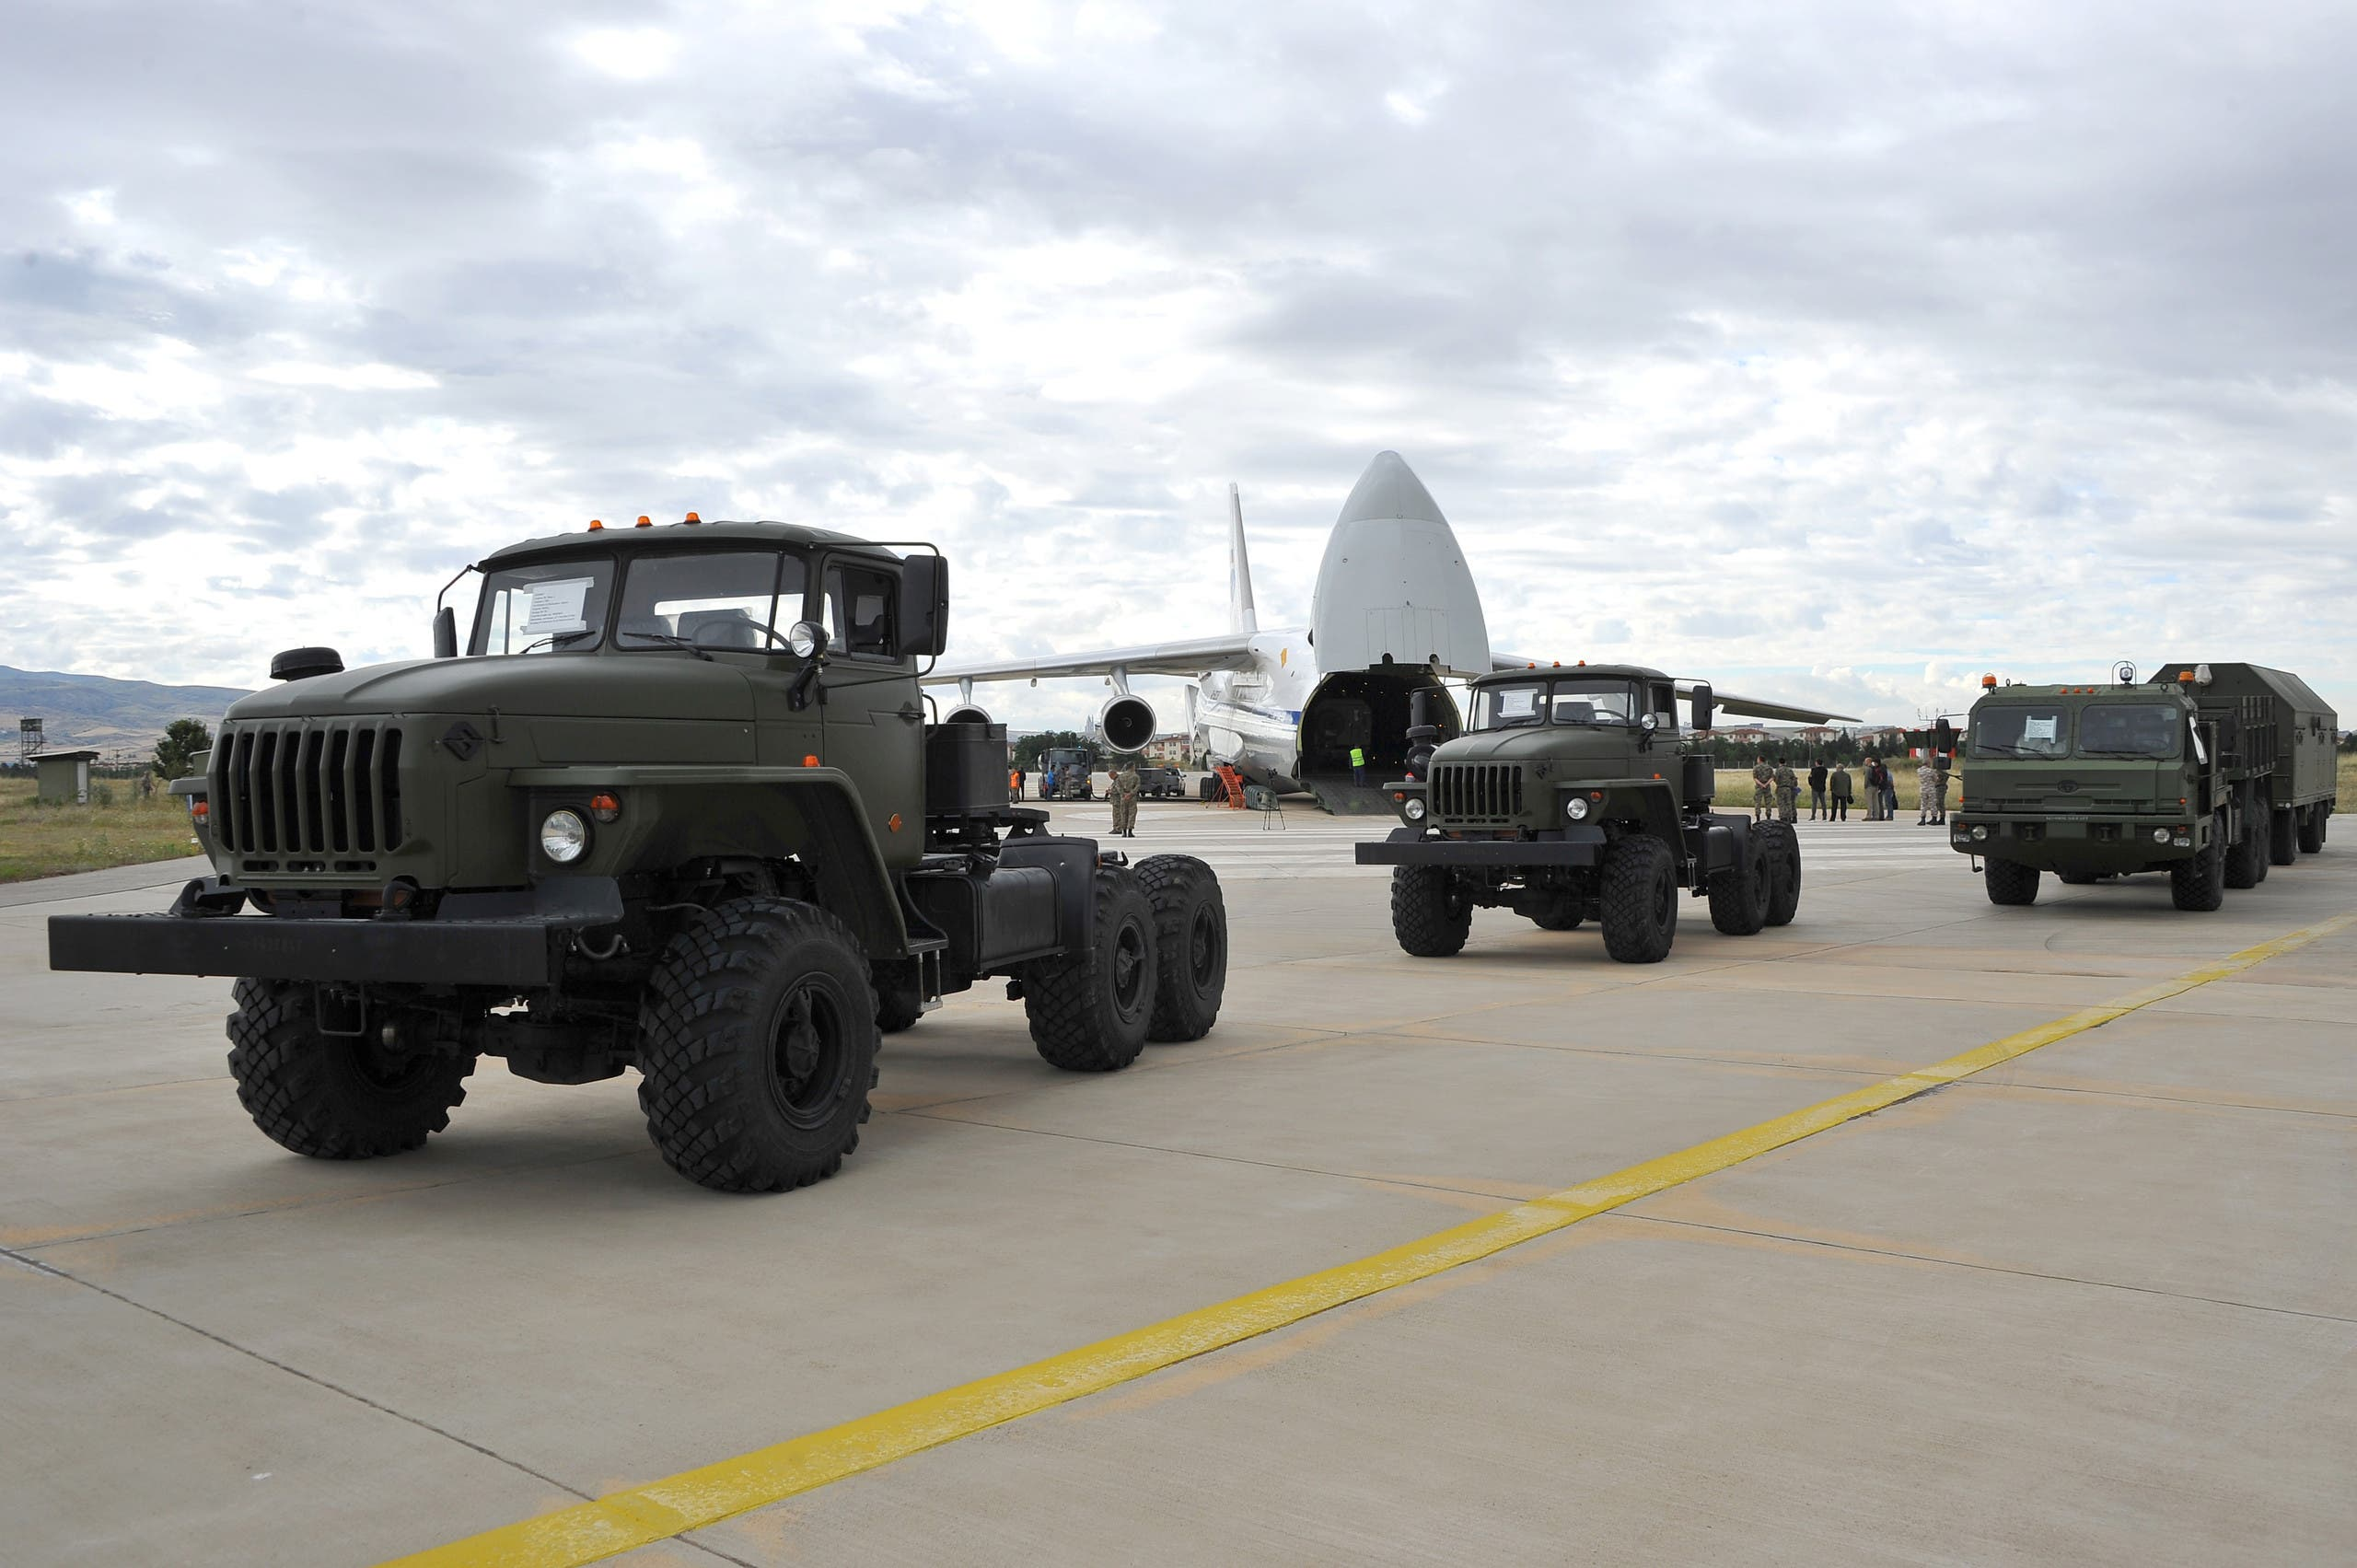 First parts of a Russian S-400 missile defense system are seen after unloaded from a Russian plane at Murted Airport, known as Akinci Air Base, near Ankara, Turkey. (File photo: Reuters)